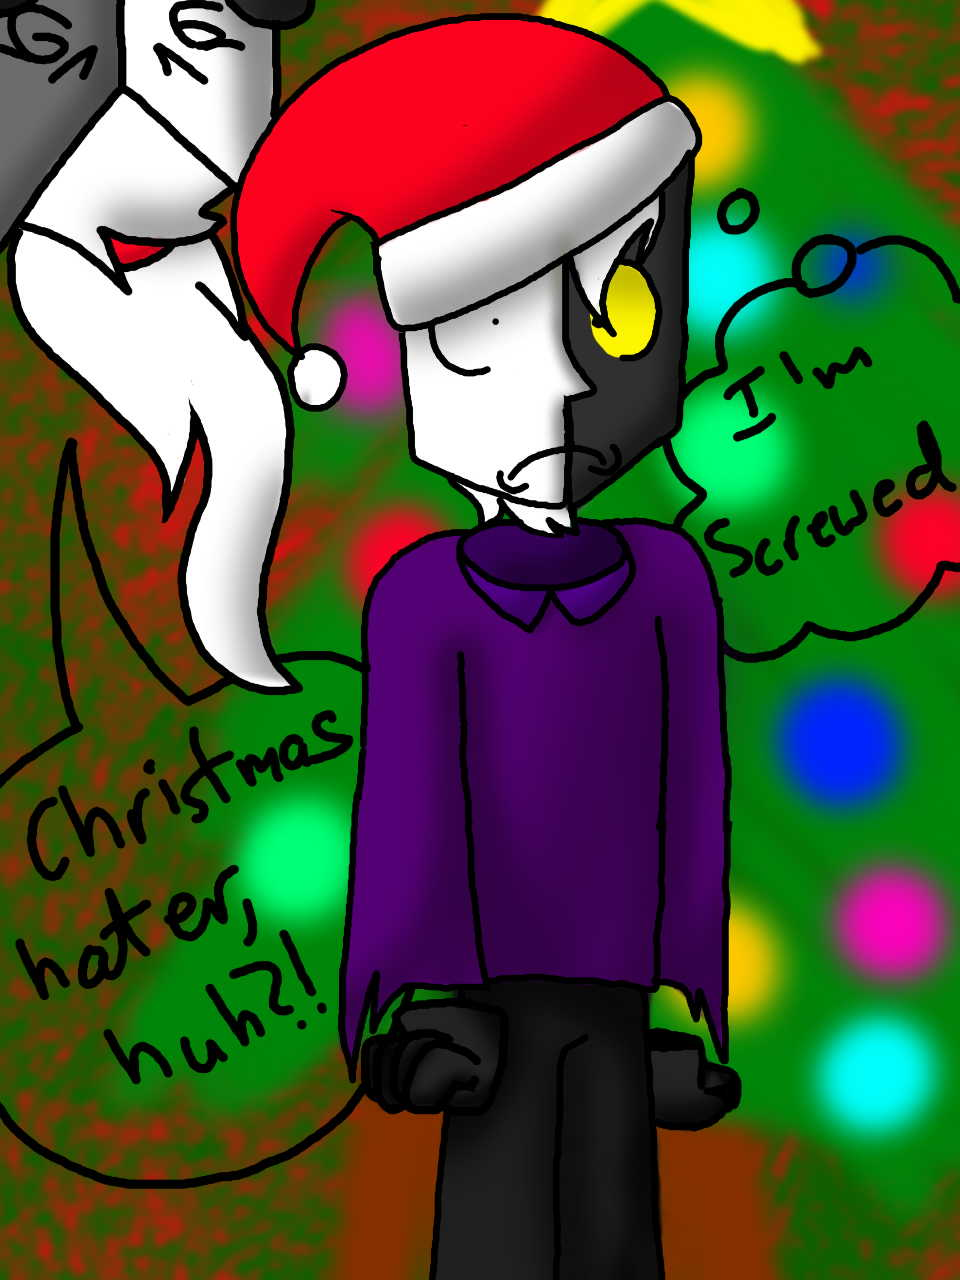 Christmas Hater.Christmas Hater Huh By Yogfan On Deviantart